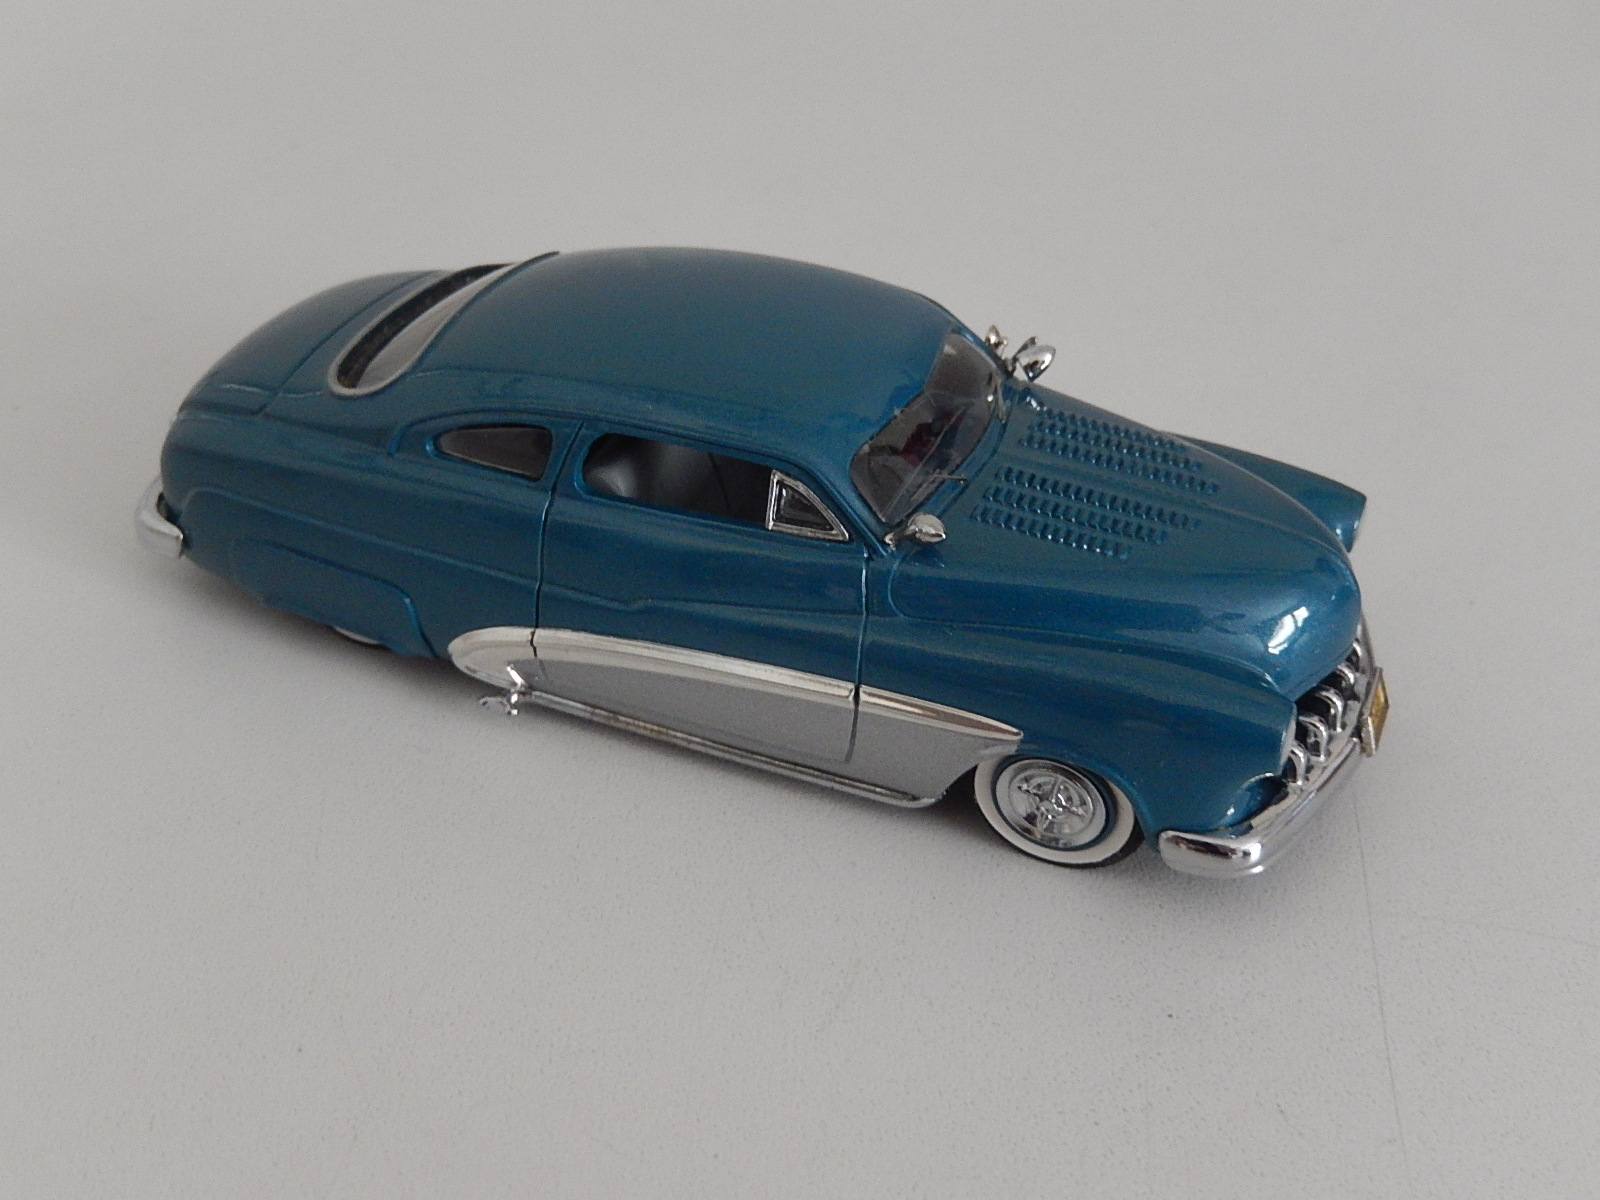 Design Studio : 1949 Mercury Blue & Silver